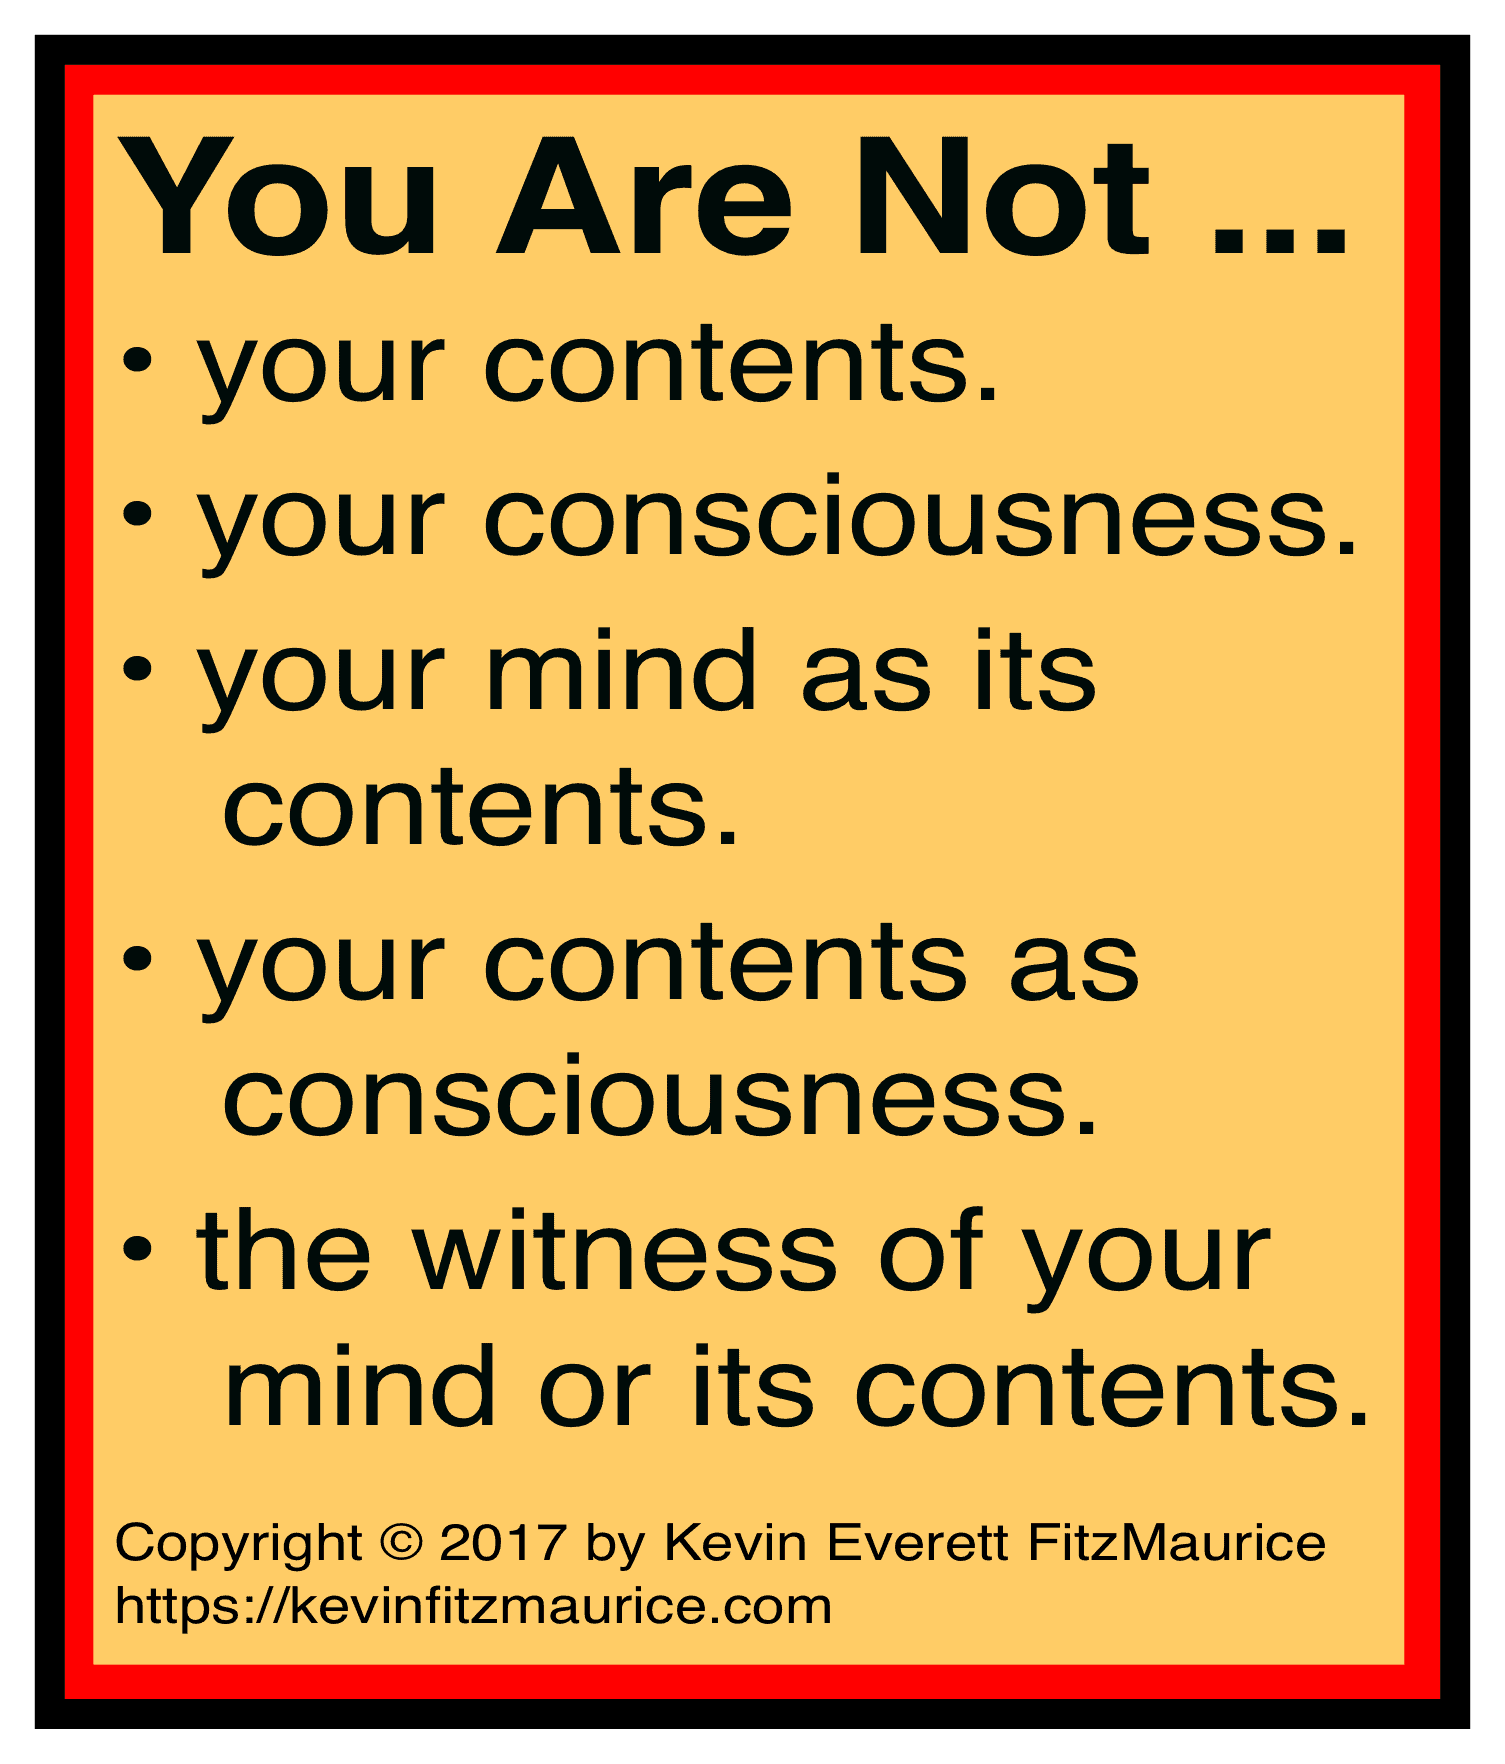 You are not your contents